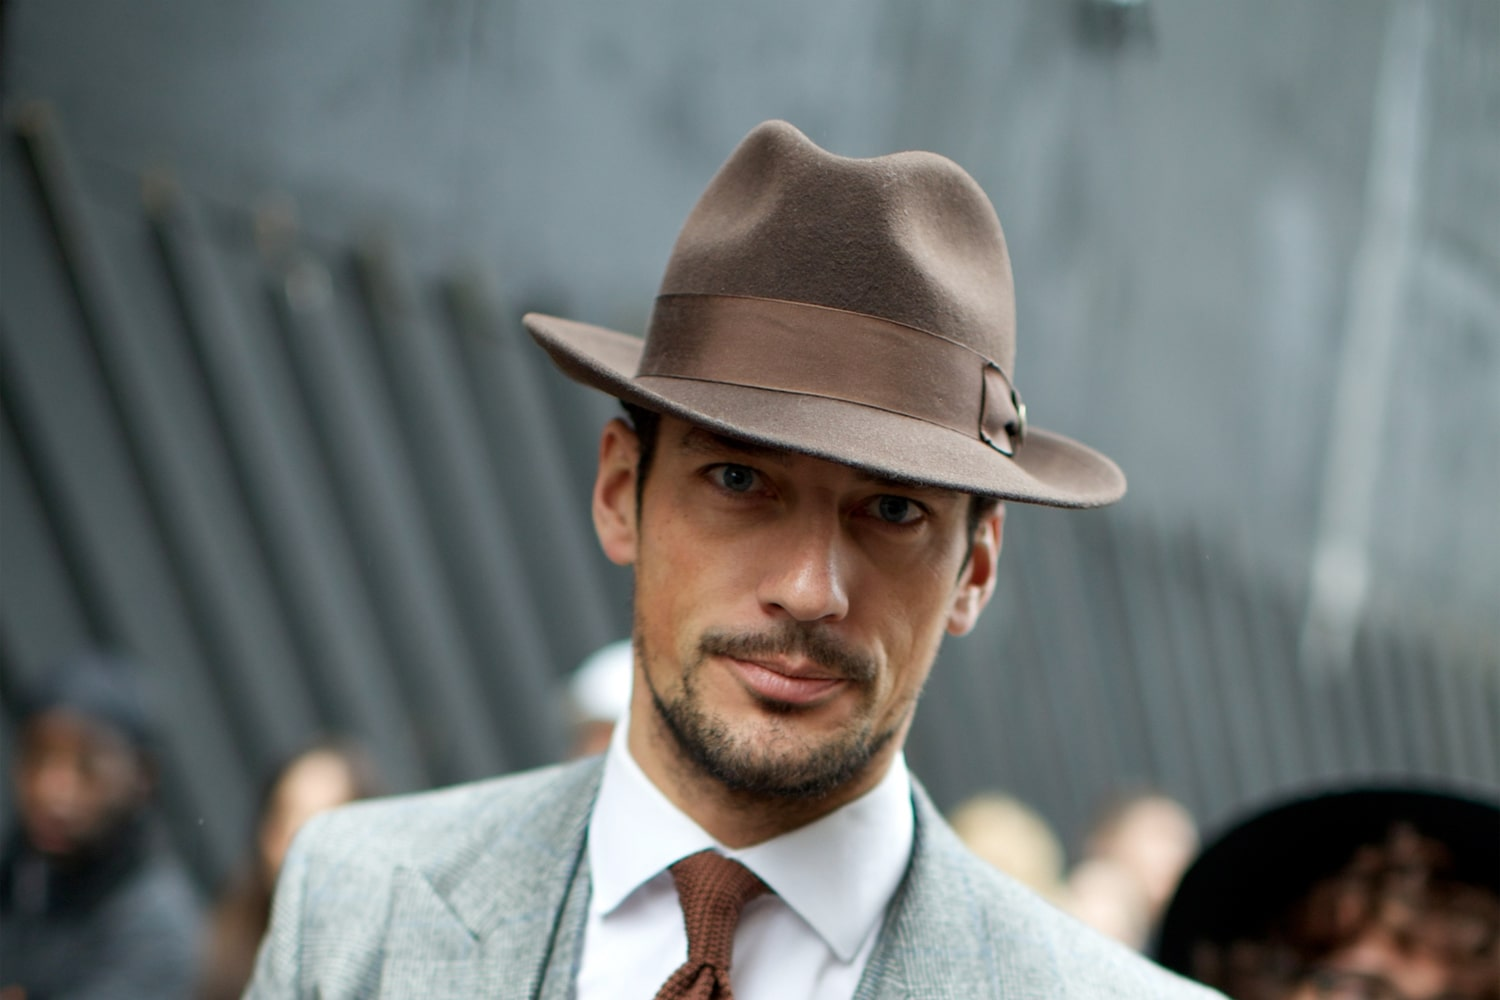 c6fbccbeb75b0 Guide to Wearing Men's Hats With Suits | Man of Many